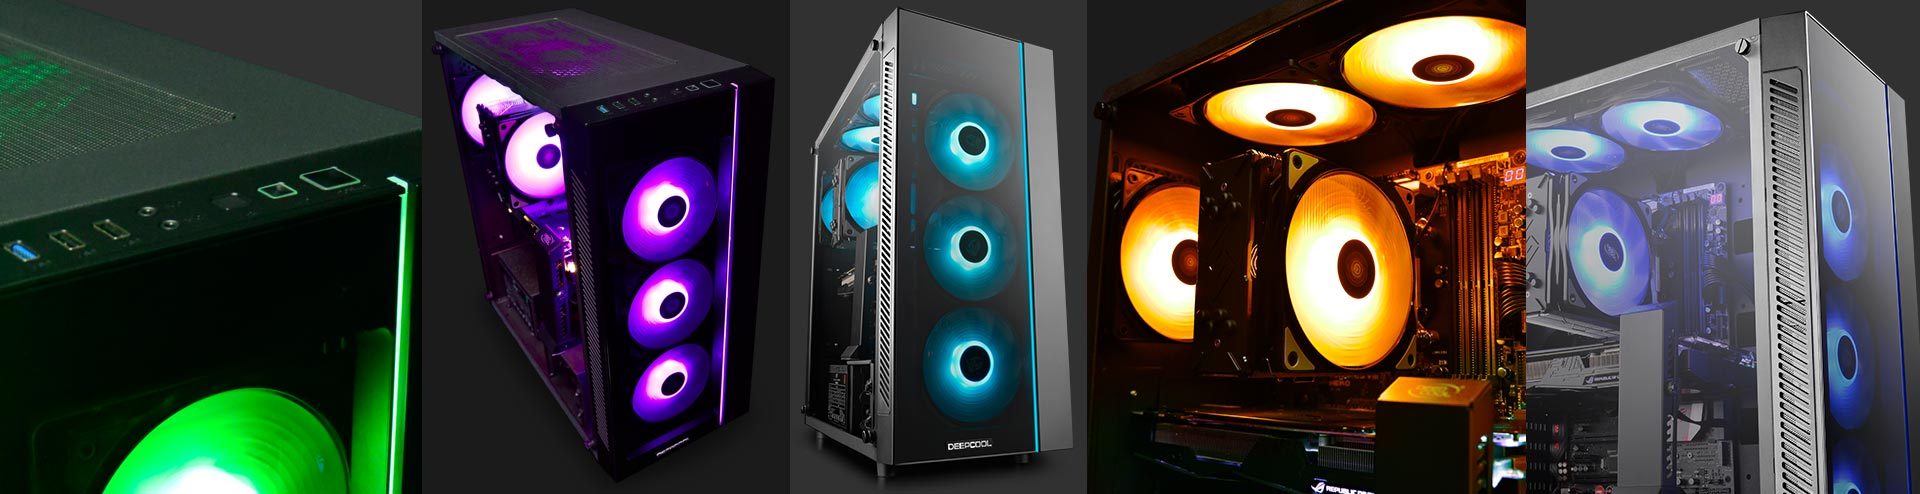 different shots and angles of the deepcool MATREXX 55 case with RGB-lit fans in green, purple, light blue, orange and teal